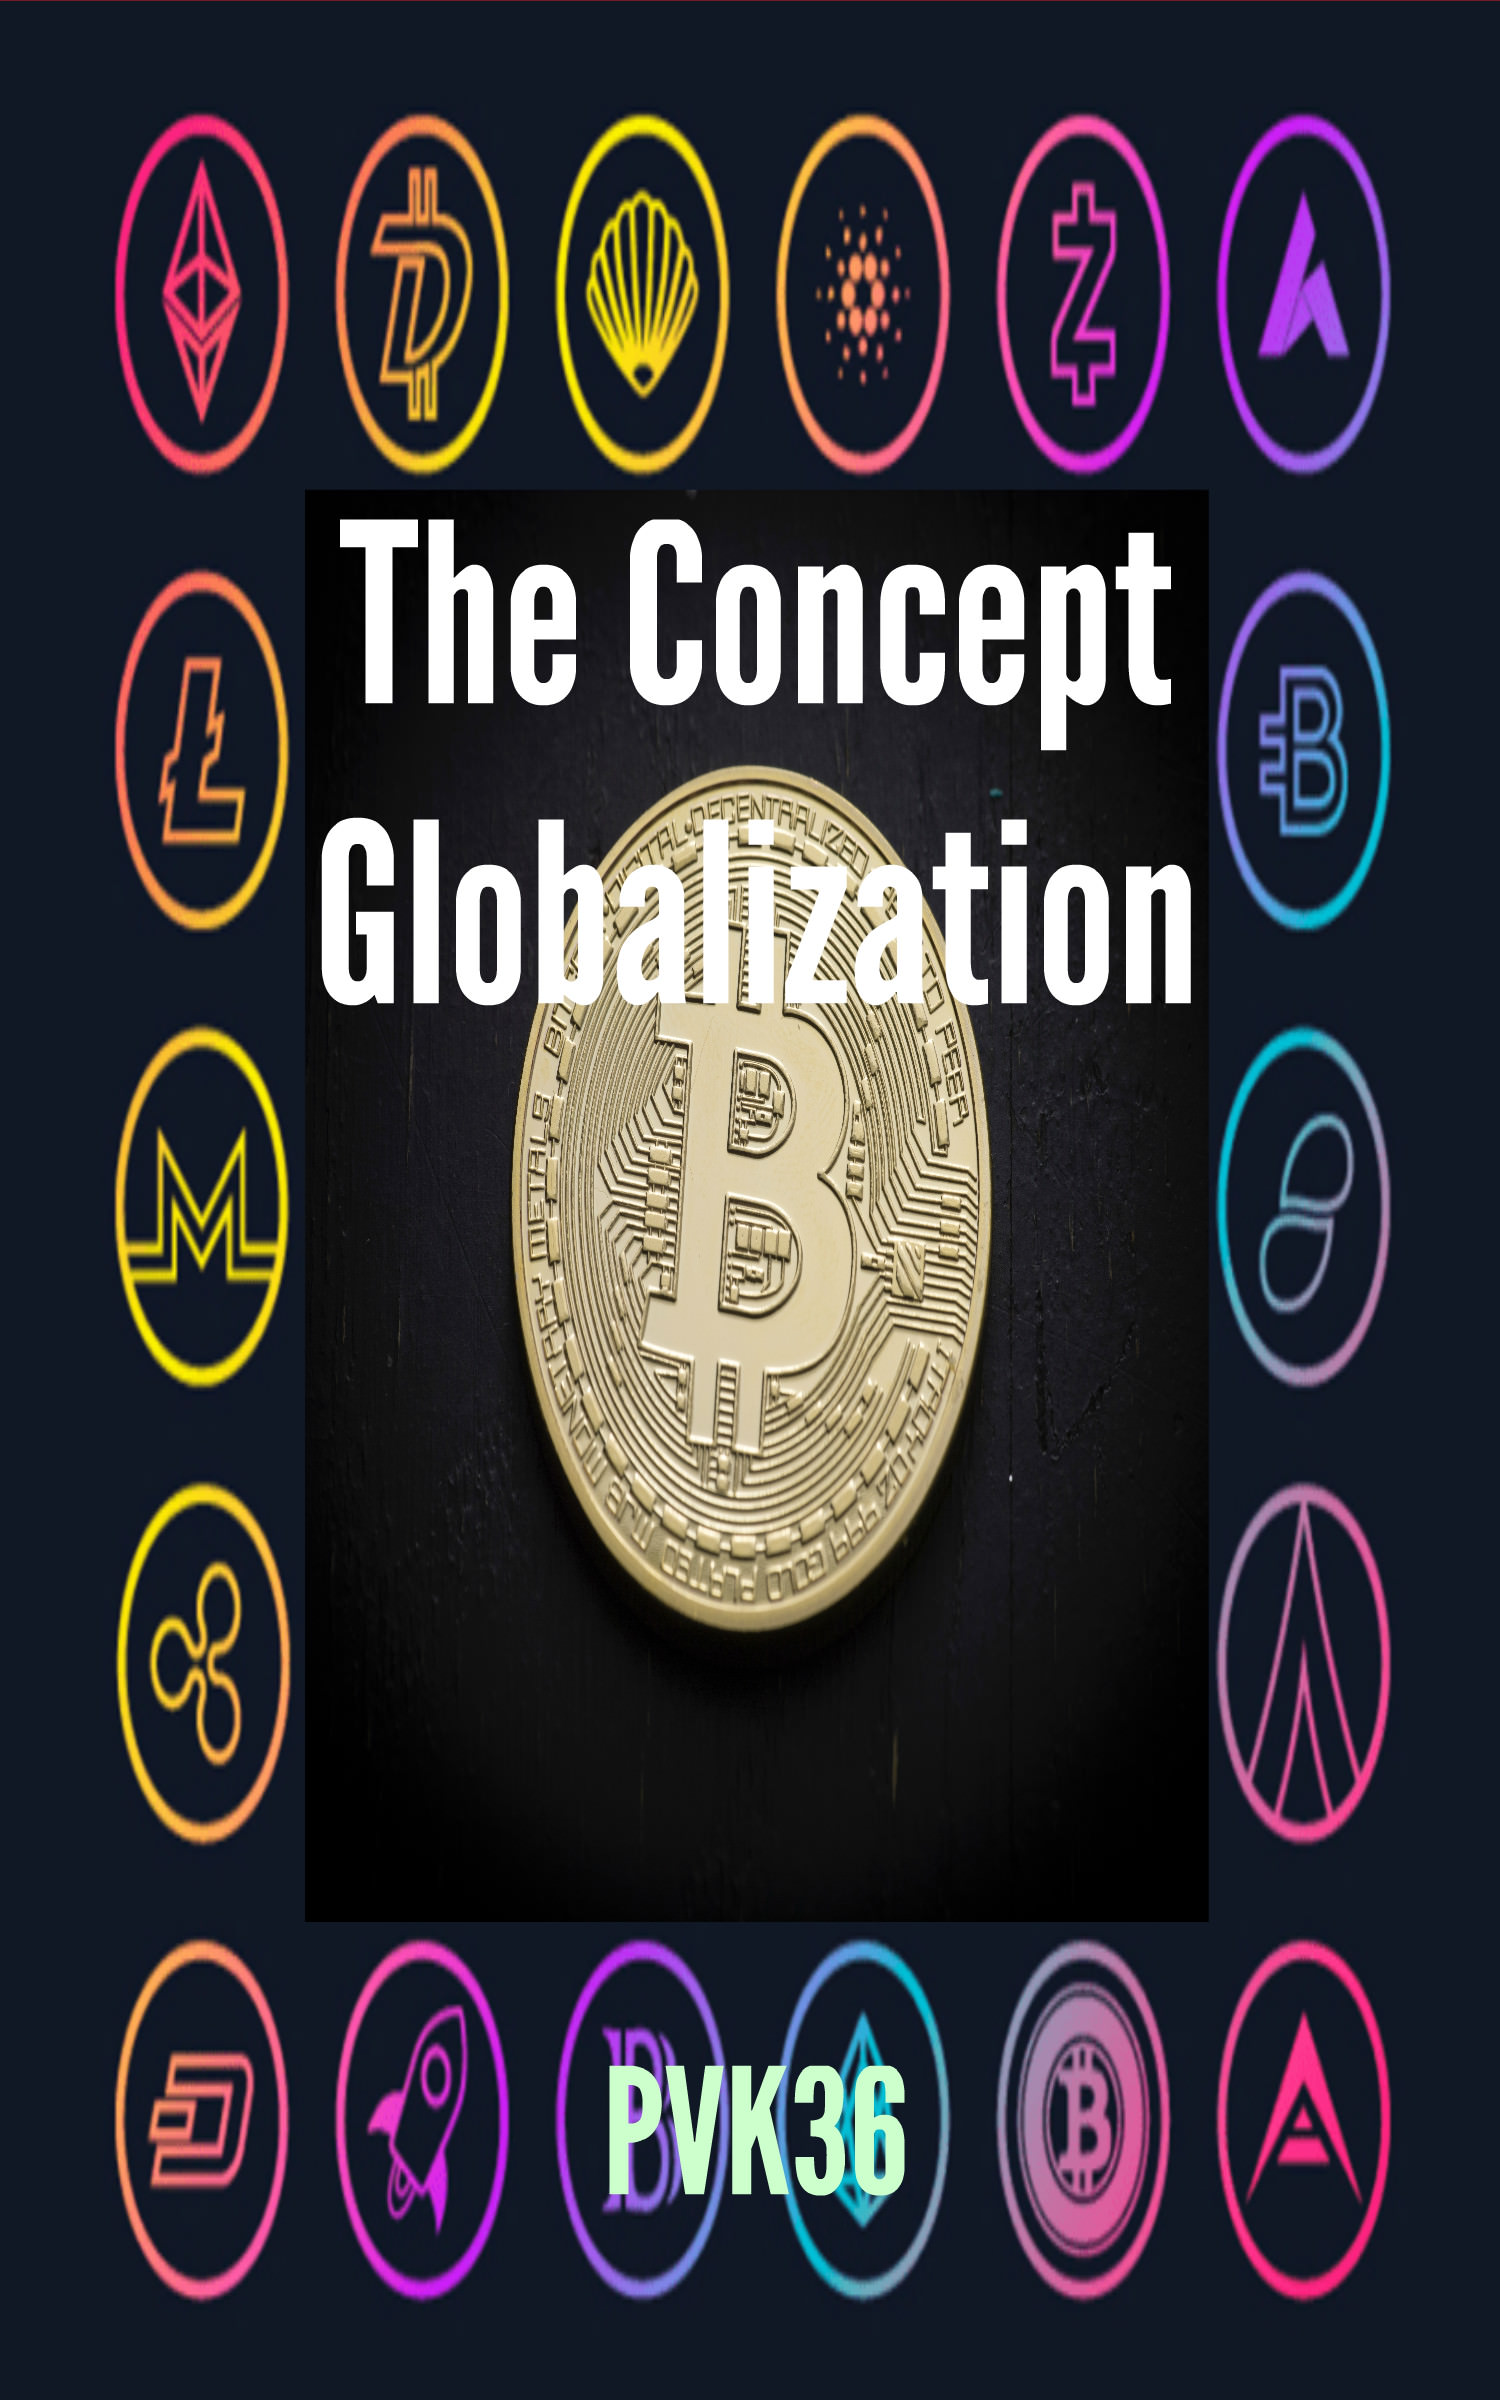 The Concept Globalization